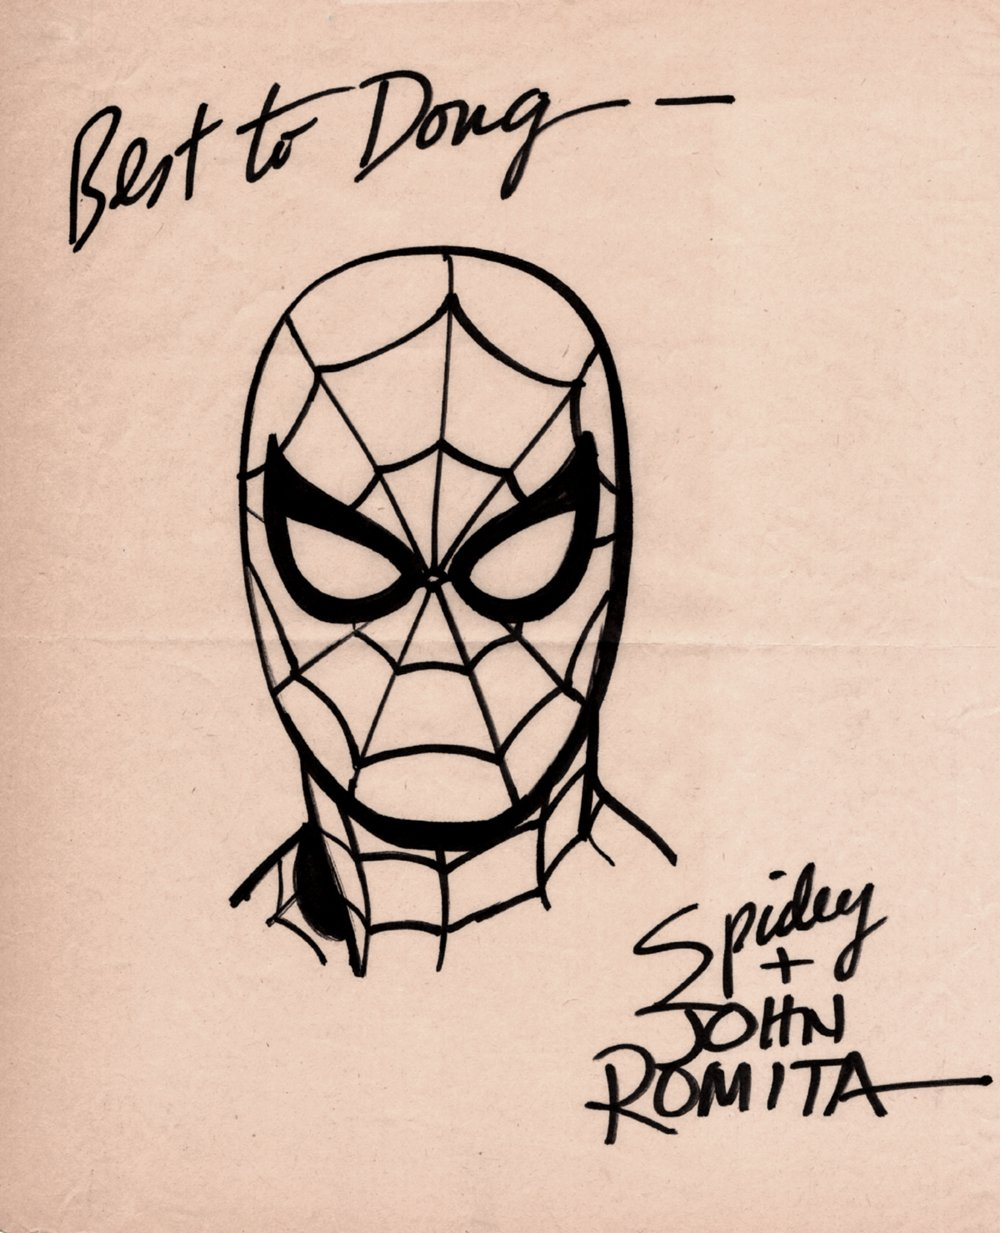 1970's Spider-Man Pinup (SOLD LIVE ON 'DUELING DEALERS OF COMIC ART' EPISODE #9 PODCAST ON 3-24-2021 (RE-WATCH OUR LIVE ART SELLING PODCAST HERE!)